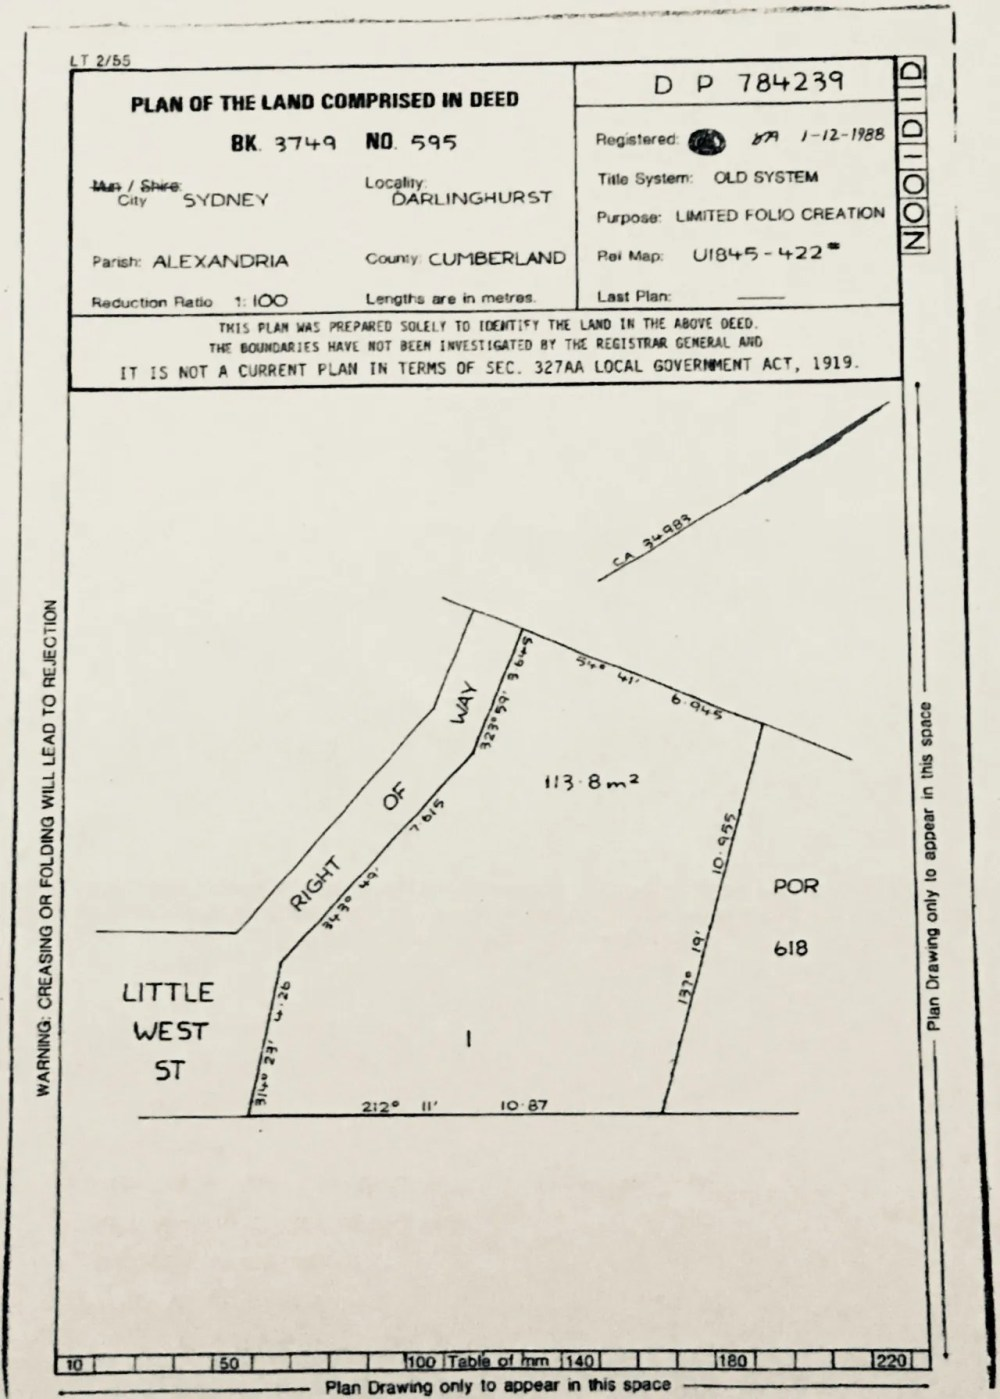 medium resolution of plan shows an abandoned common law title strip of land marked right of way